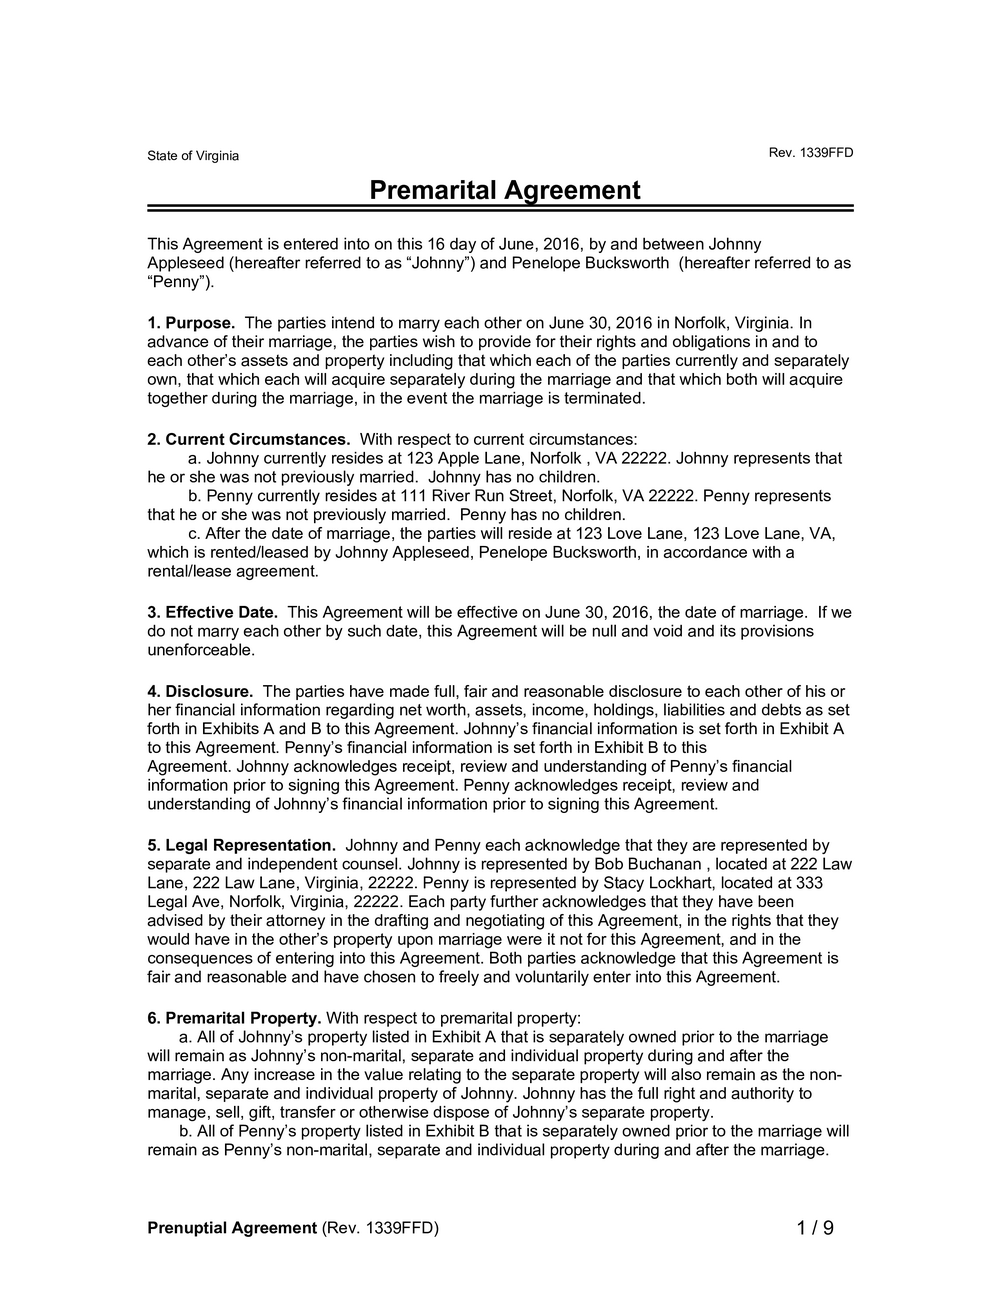 Prenuptial Agreement Form Philippines